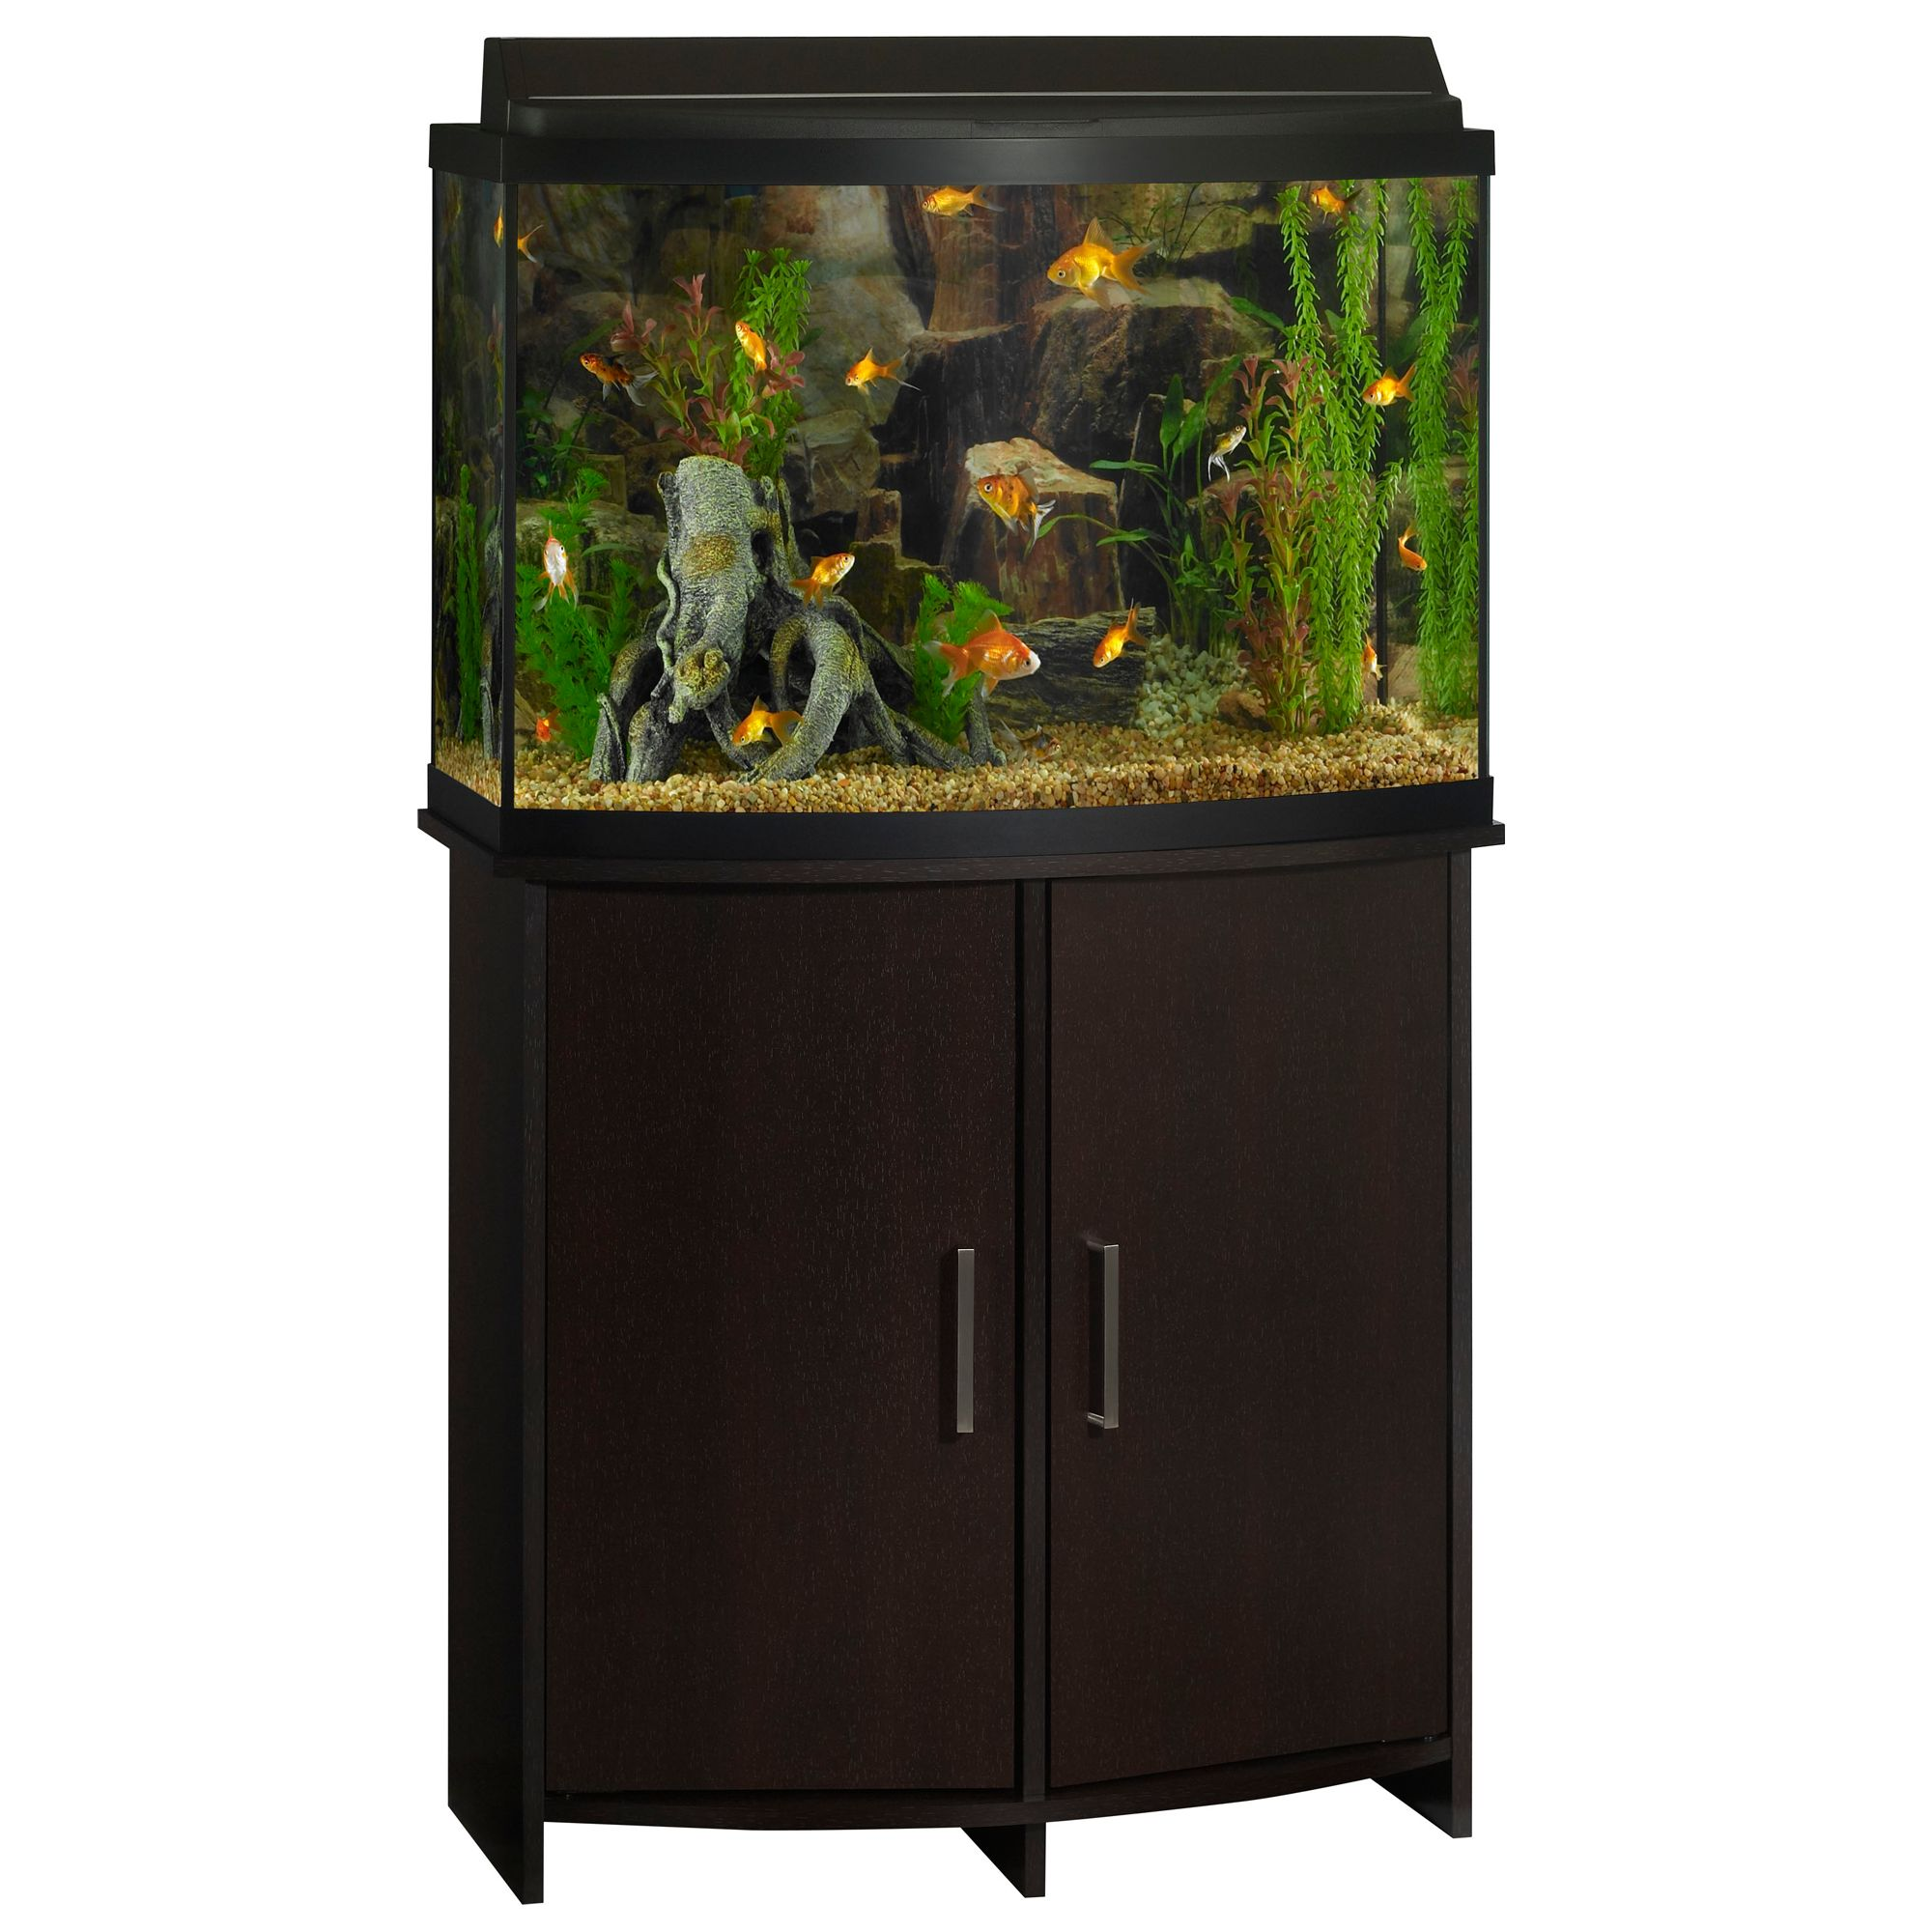 Fish Supplies: Aquarium Supplies & Accessories | PetSmart